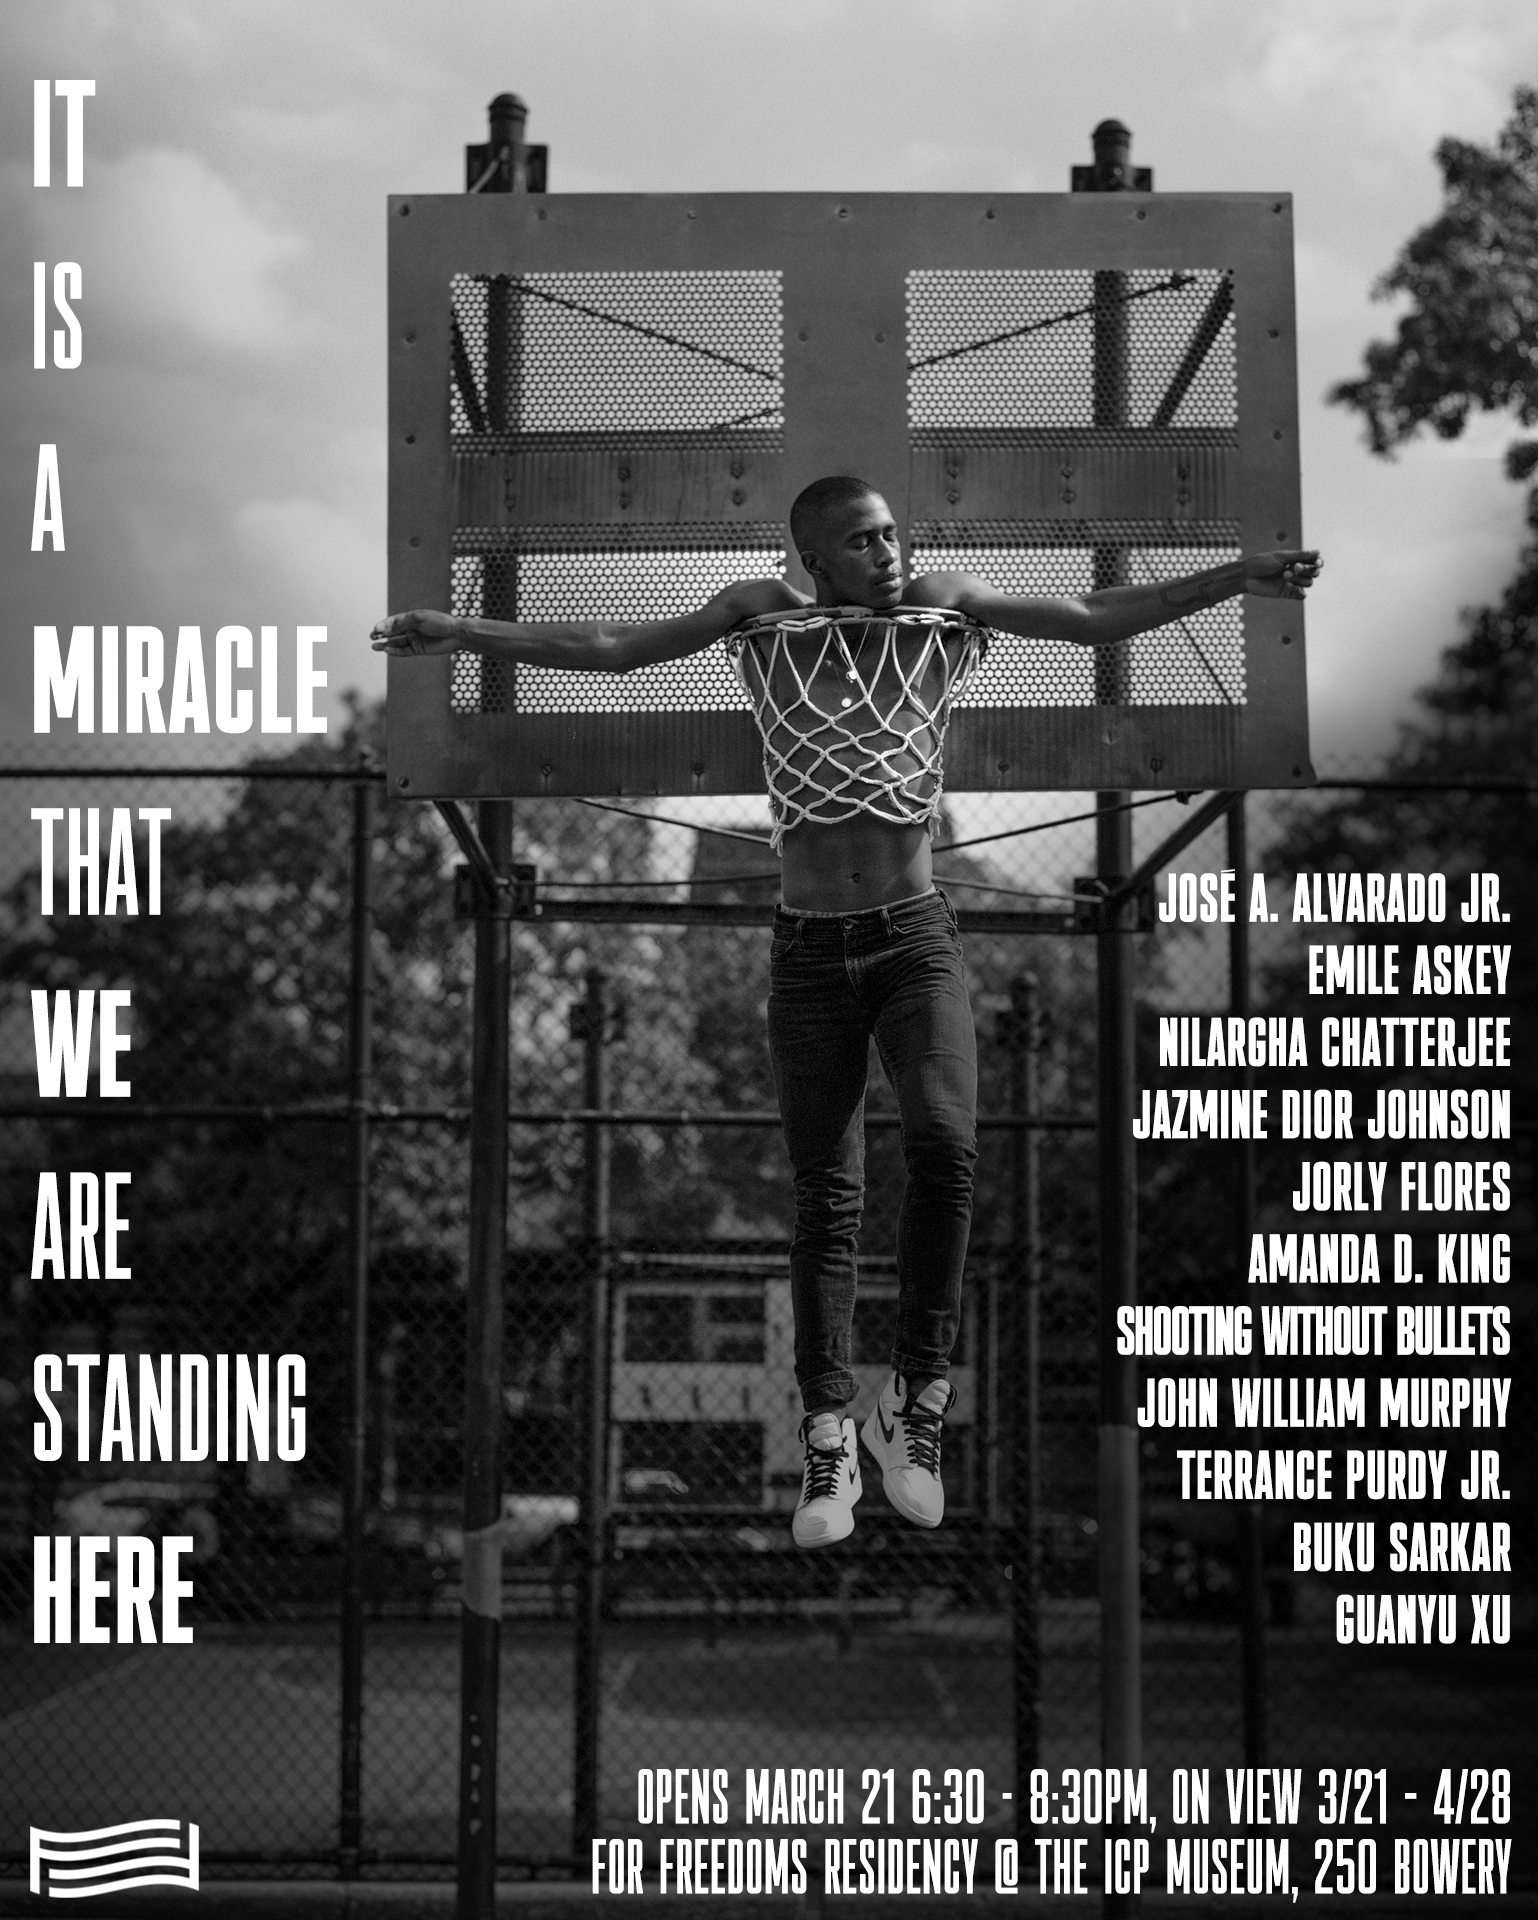 IT IS A MIRACLE THAT WE ARE STANDING HERE